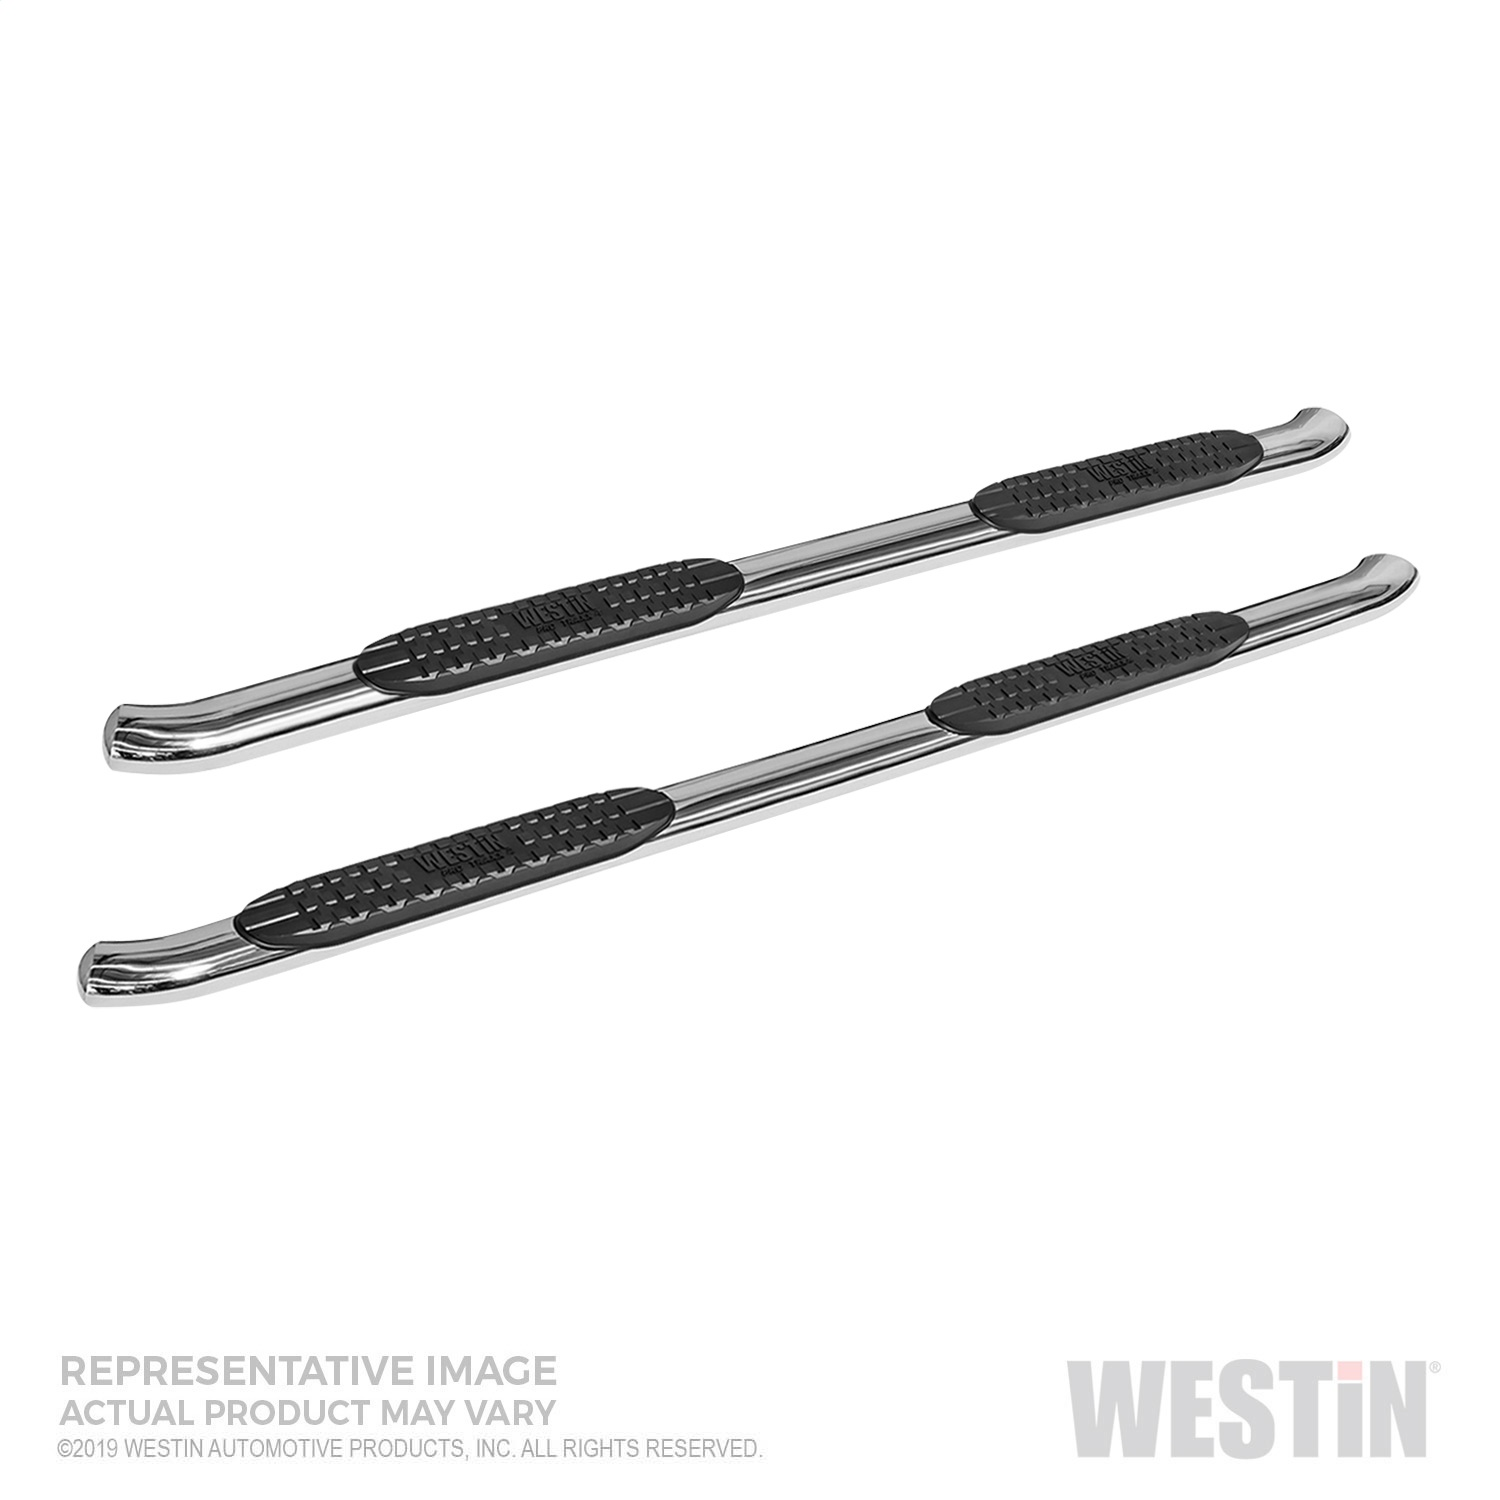 PRO TRAXX 4 Oval Nerf Step Bars, Stainless Steel, Incl. Mount Kit And Hardware,